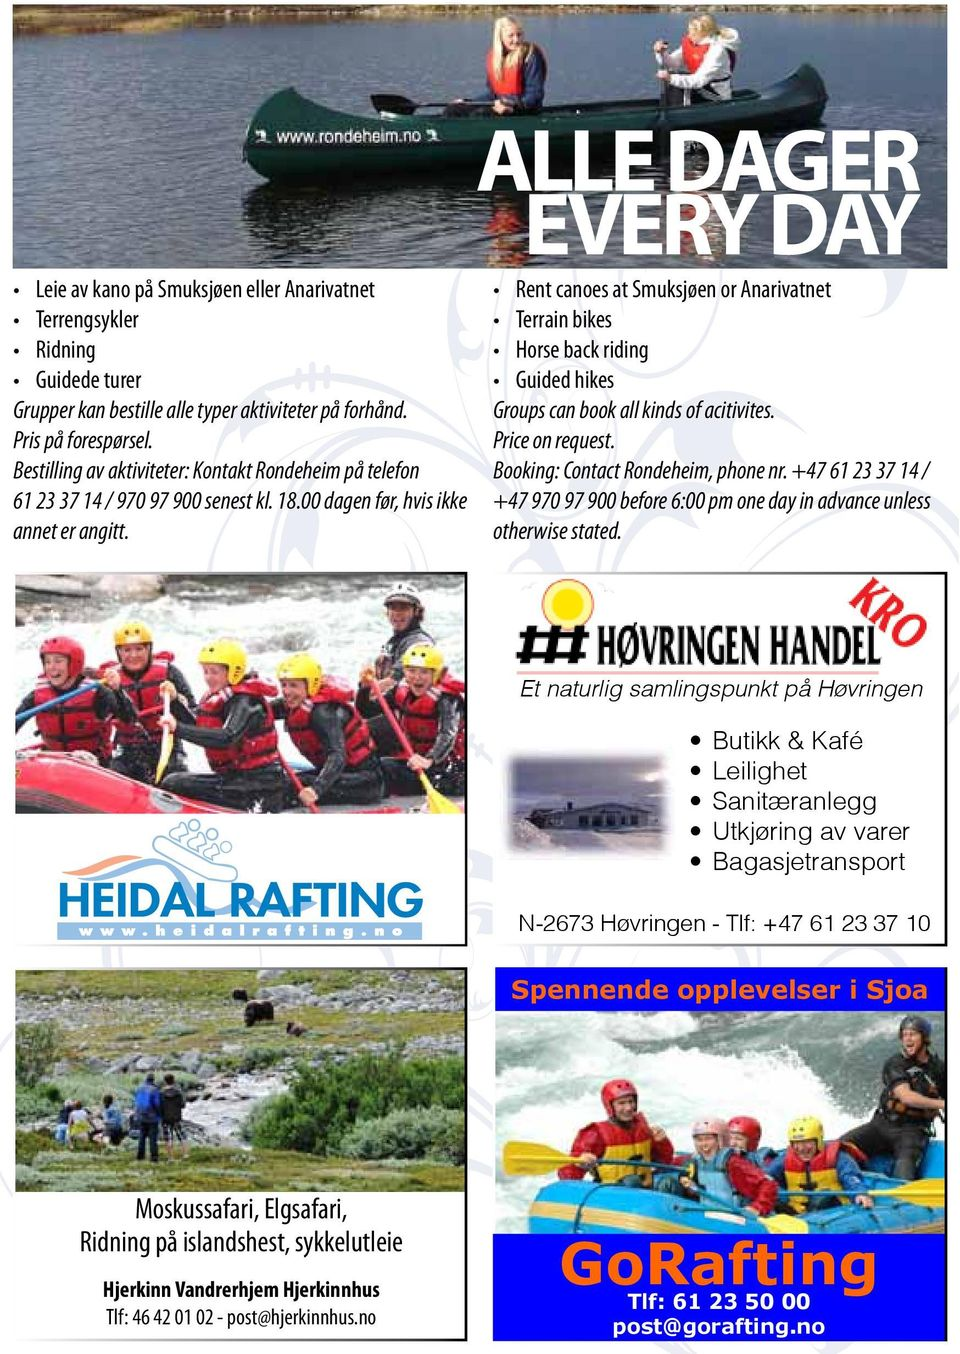 ALLE DAGER EVERY DAY Rent canoes at Smuksjøen or Anarivatnet Terrain bikes Horse back riding Guided hikes Groups can book all kinds of acitivites. Price on request. Booking: Contact, phone nr.